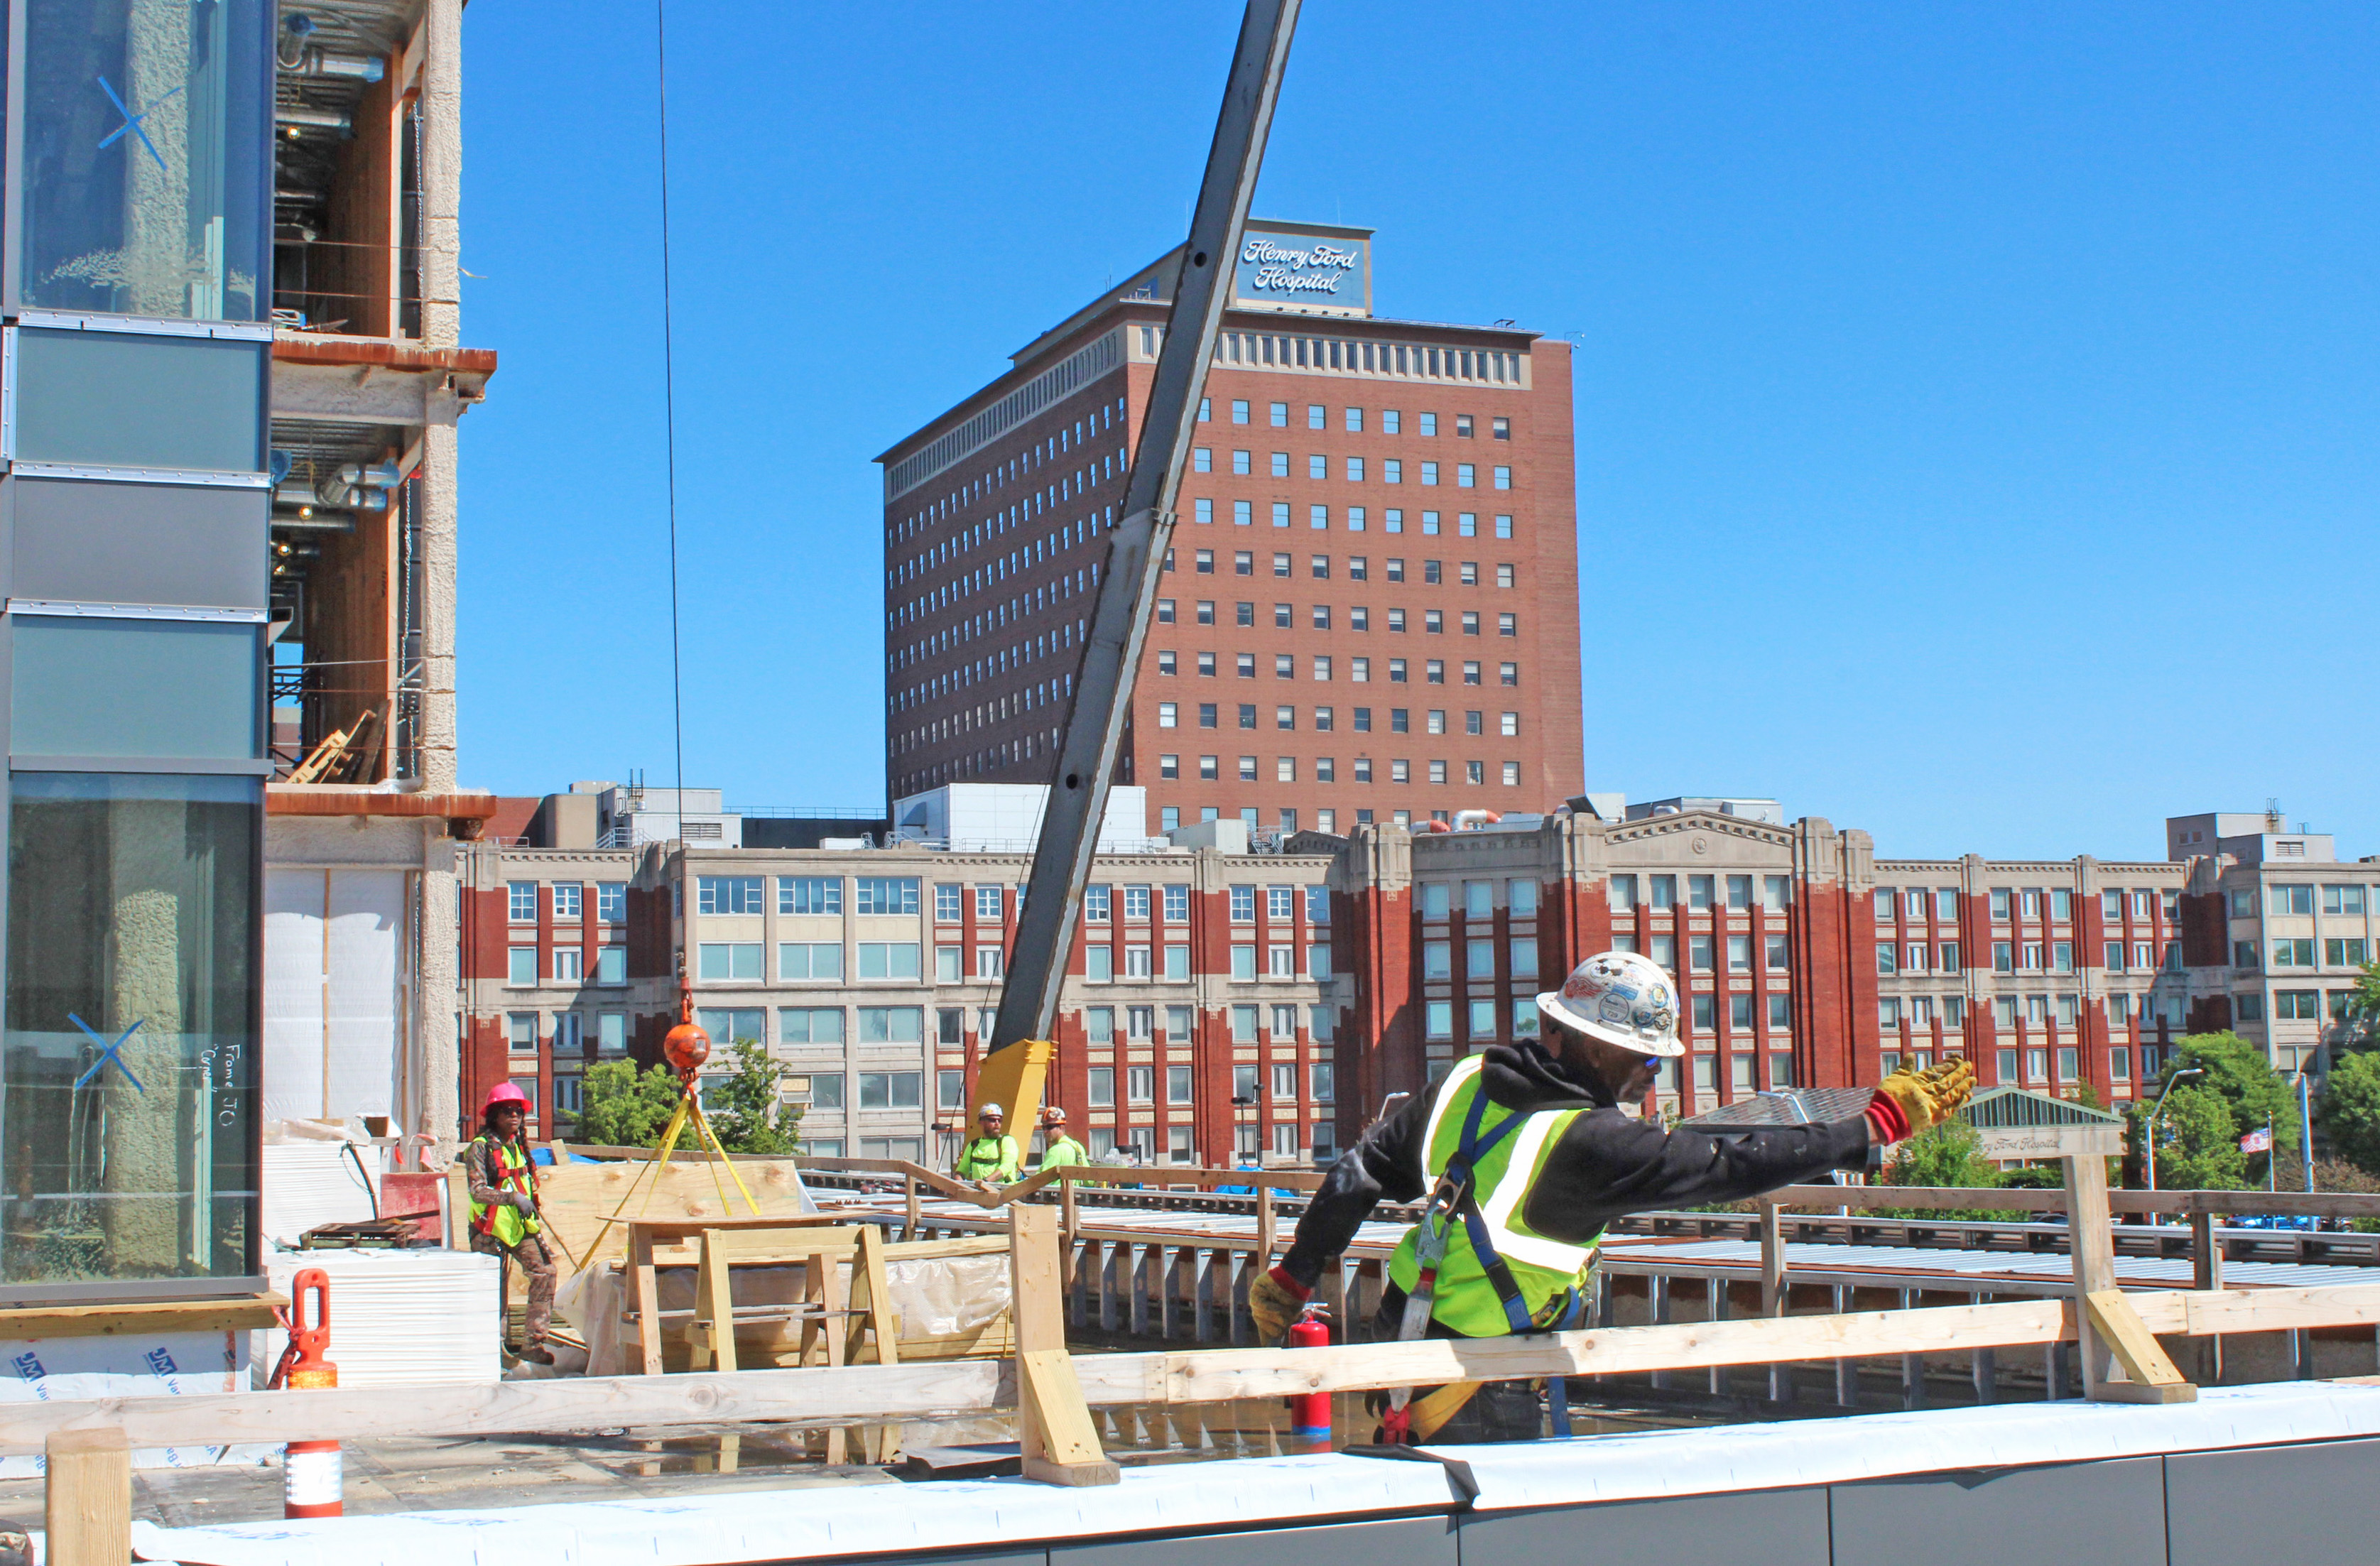 Cancer treatment getting its own, new building at Henry Ford Health